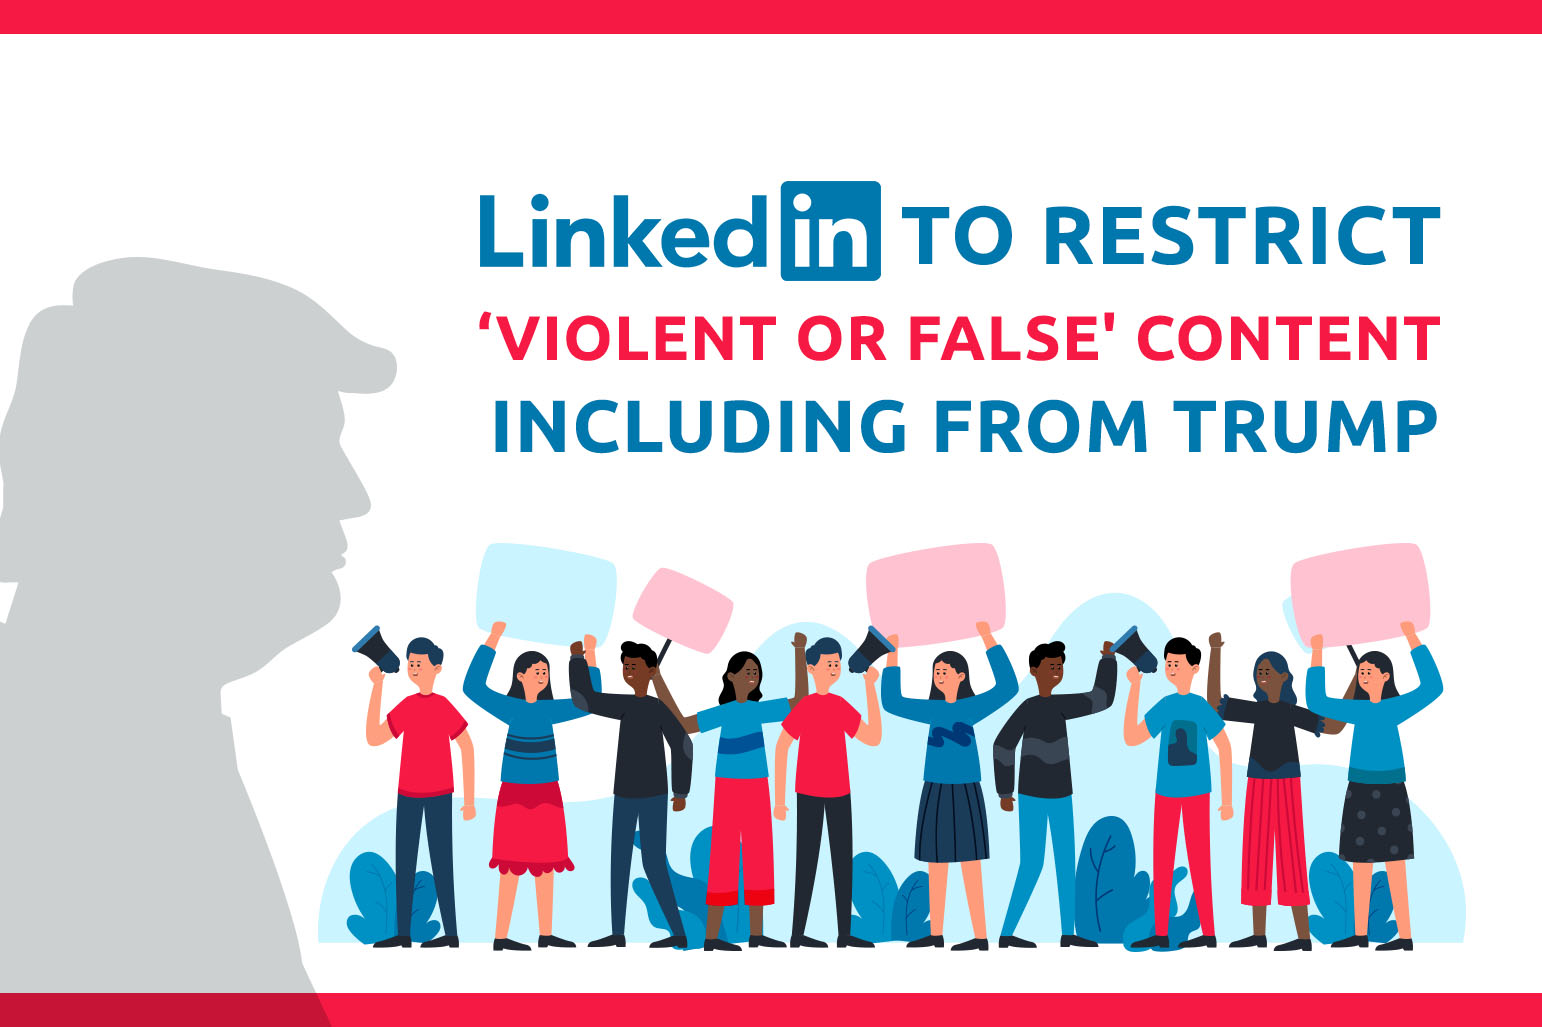 LinkedIn To Restrict 'Violent Or False' Content—Including From Trump